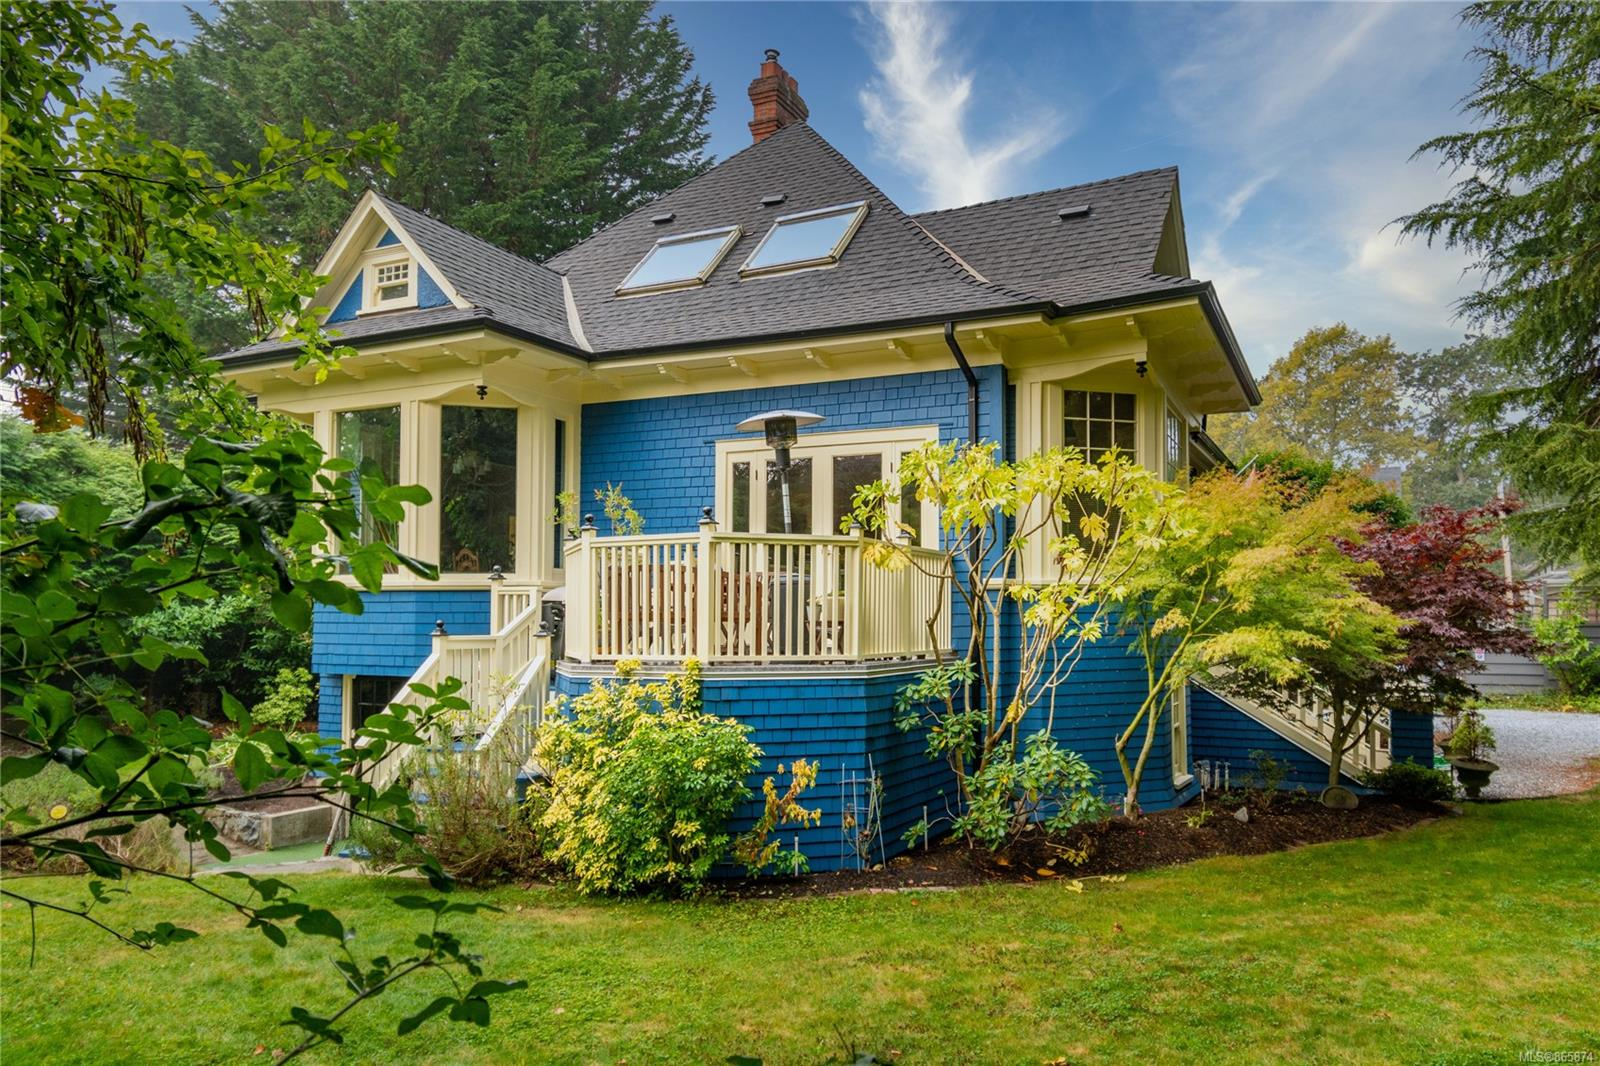 This wonderful family home built in the early 1900's exudes all the charm and character of its vintage, while offering substantial upgrades. With generous proportions in all the rooms, 5 plus bedrooms, 4 bathrooms, high ceilings (10.5 ft) gorgeous moldings, and abundant windowsill combine for something truly special. The home is situated on a very private 114x121 foot lot (.32 acre) ideally located in walking distance the village , beaches, park and schools. A classic home home for sure!